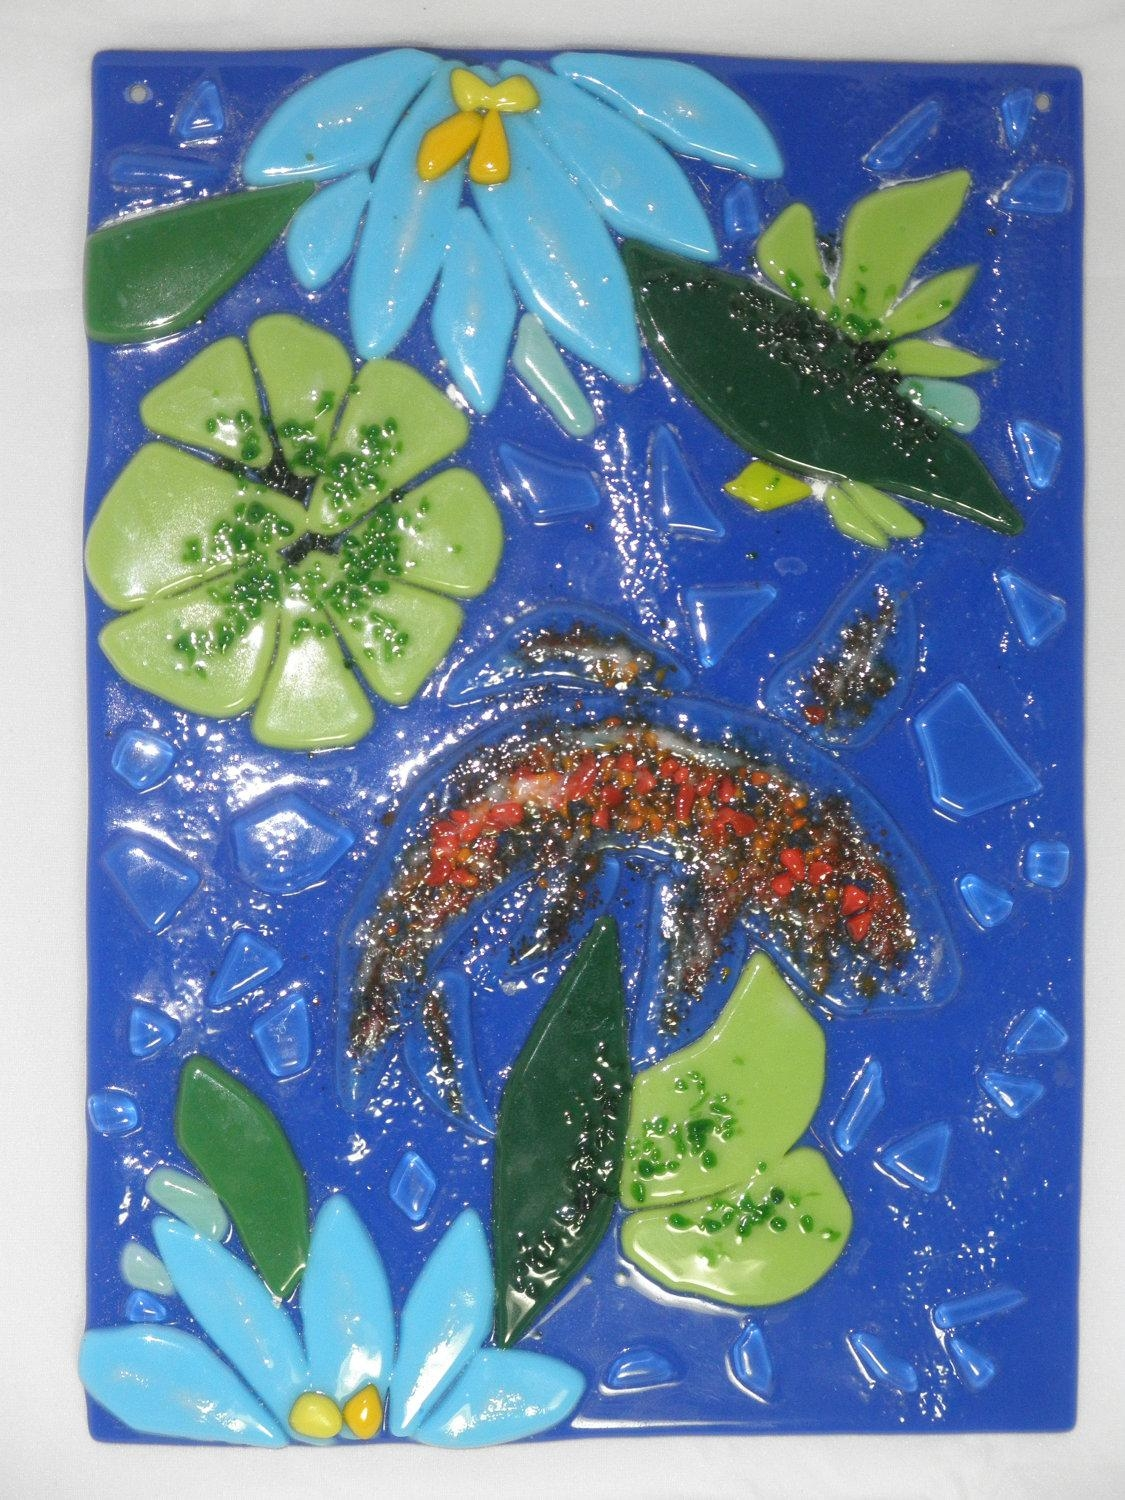 Koi Fish Tack Fused Glass Wall Hanging 6X8 Fused Intended For Fused Glass Fish Wall Art (View 5 of 20)